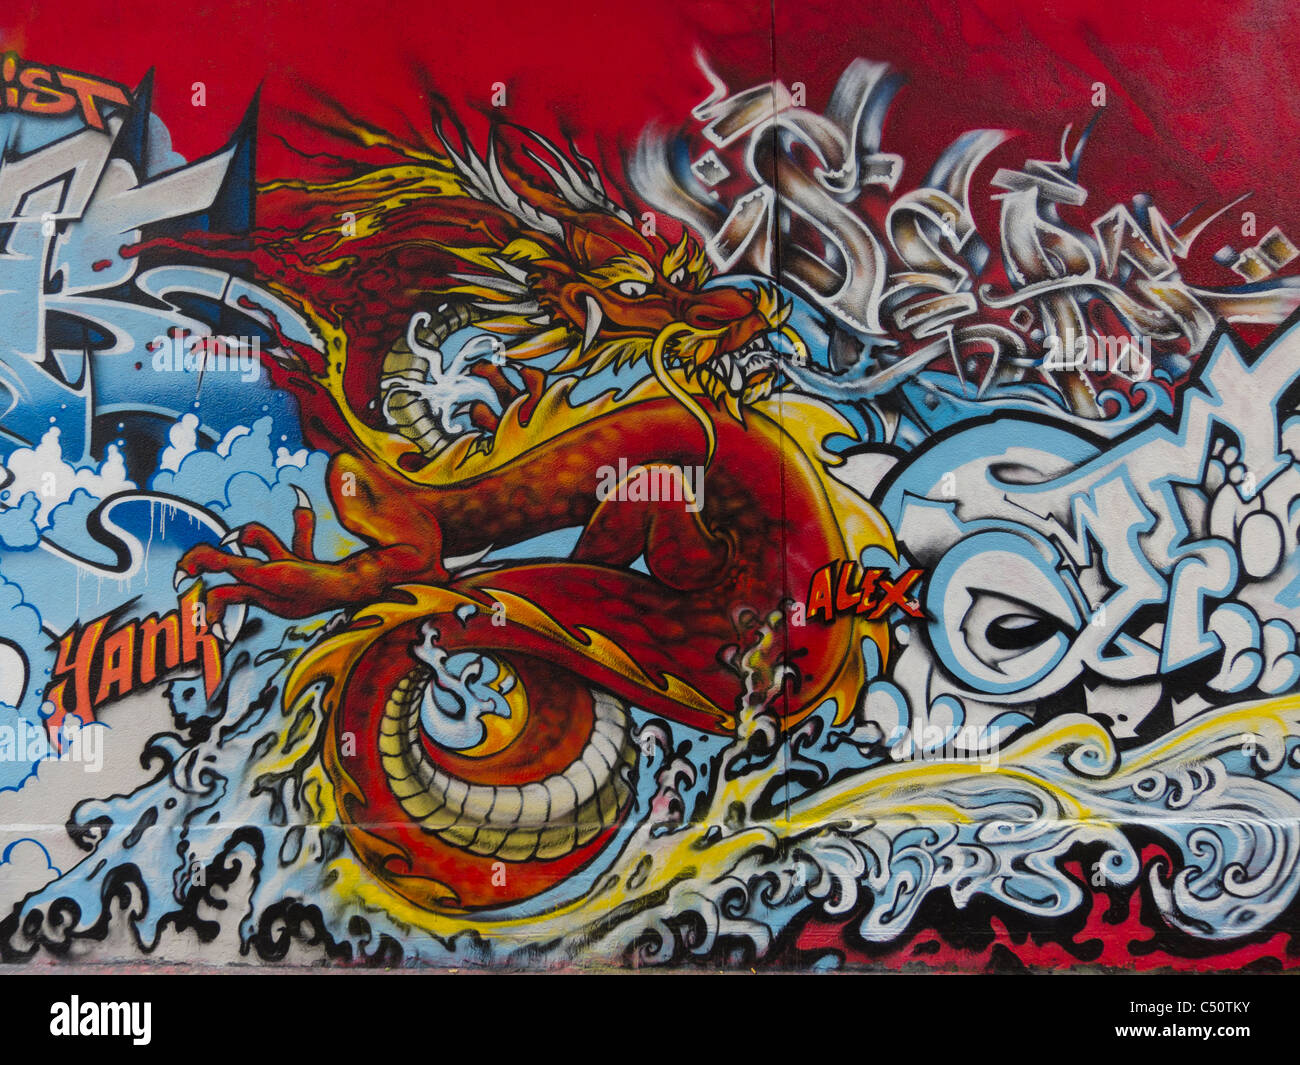 Paris, France, l'artiste graffiti mur peinture asiatique, Dragon Graphique Illustration, Street Art Photo Stock